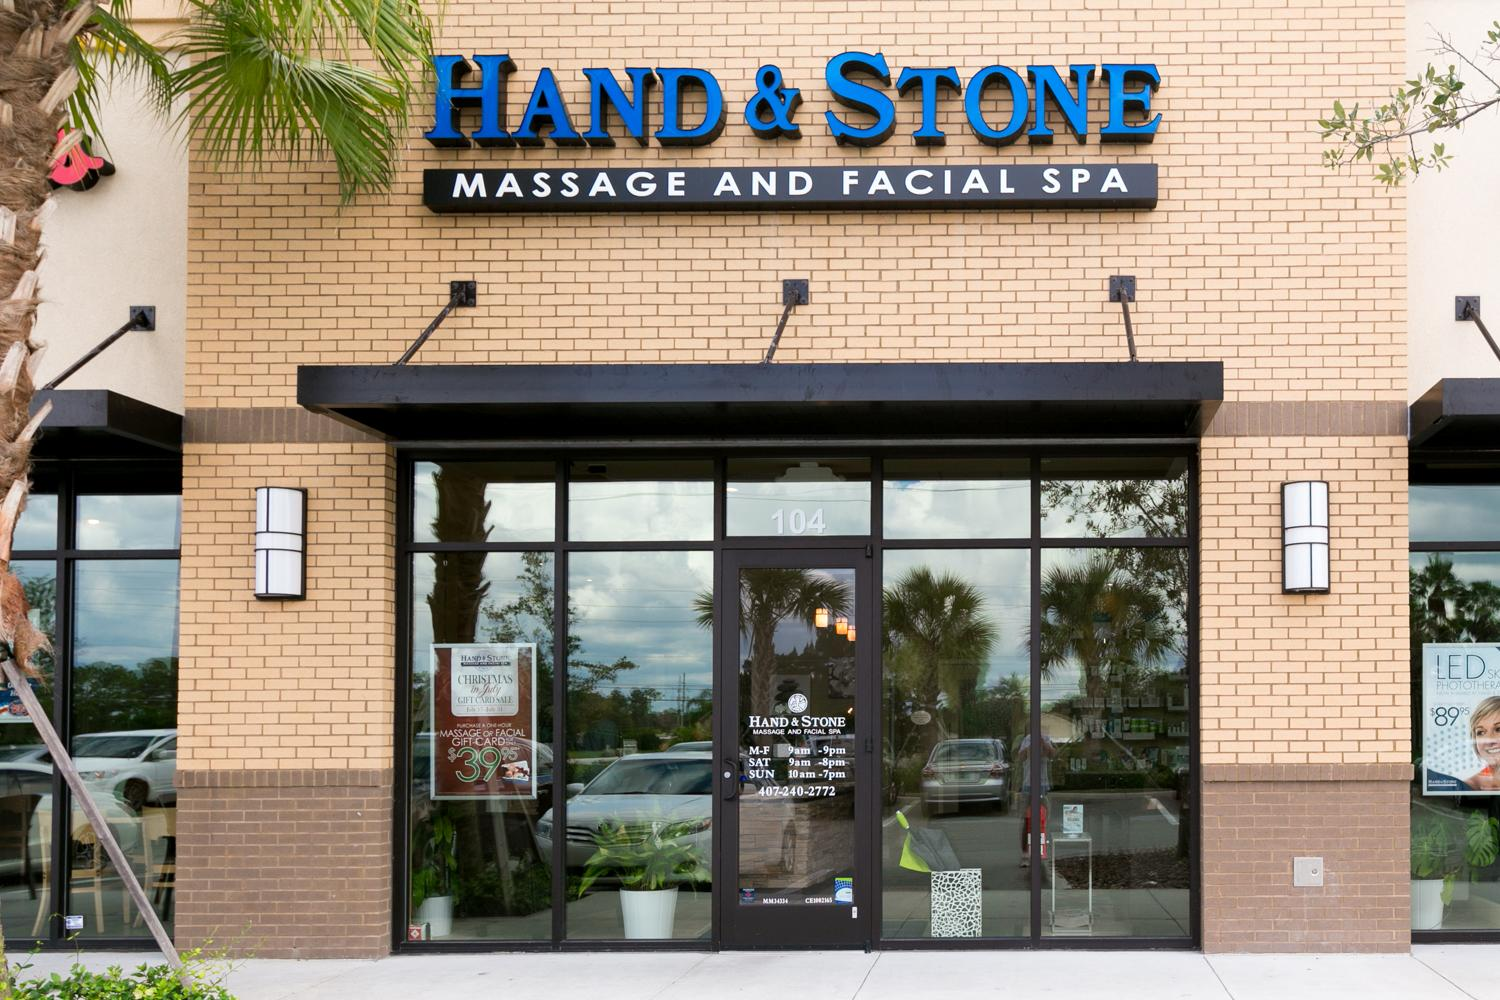 Located just north of Valencia's Lake Nona Campus, we are at 12278 Narcoossee Rd in Vickrey Plaza along with Starbucks, Jersey Mike's, Tropical Smoothie Cafe, OXXO Cleaners and Chipotle. Give us a call to make your appointment today!